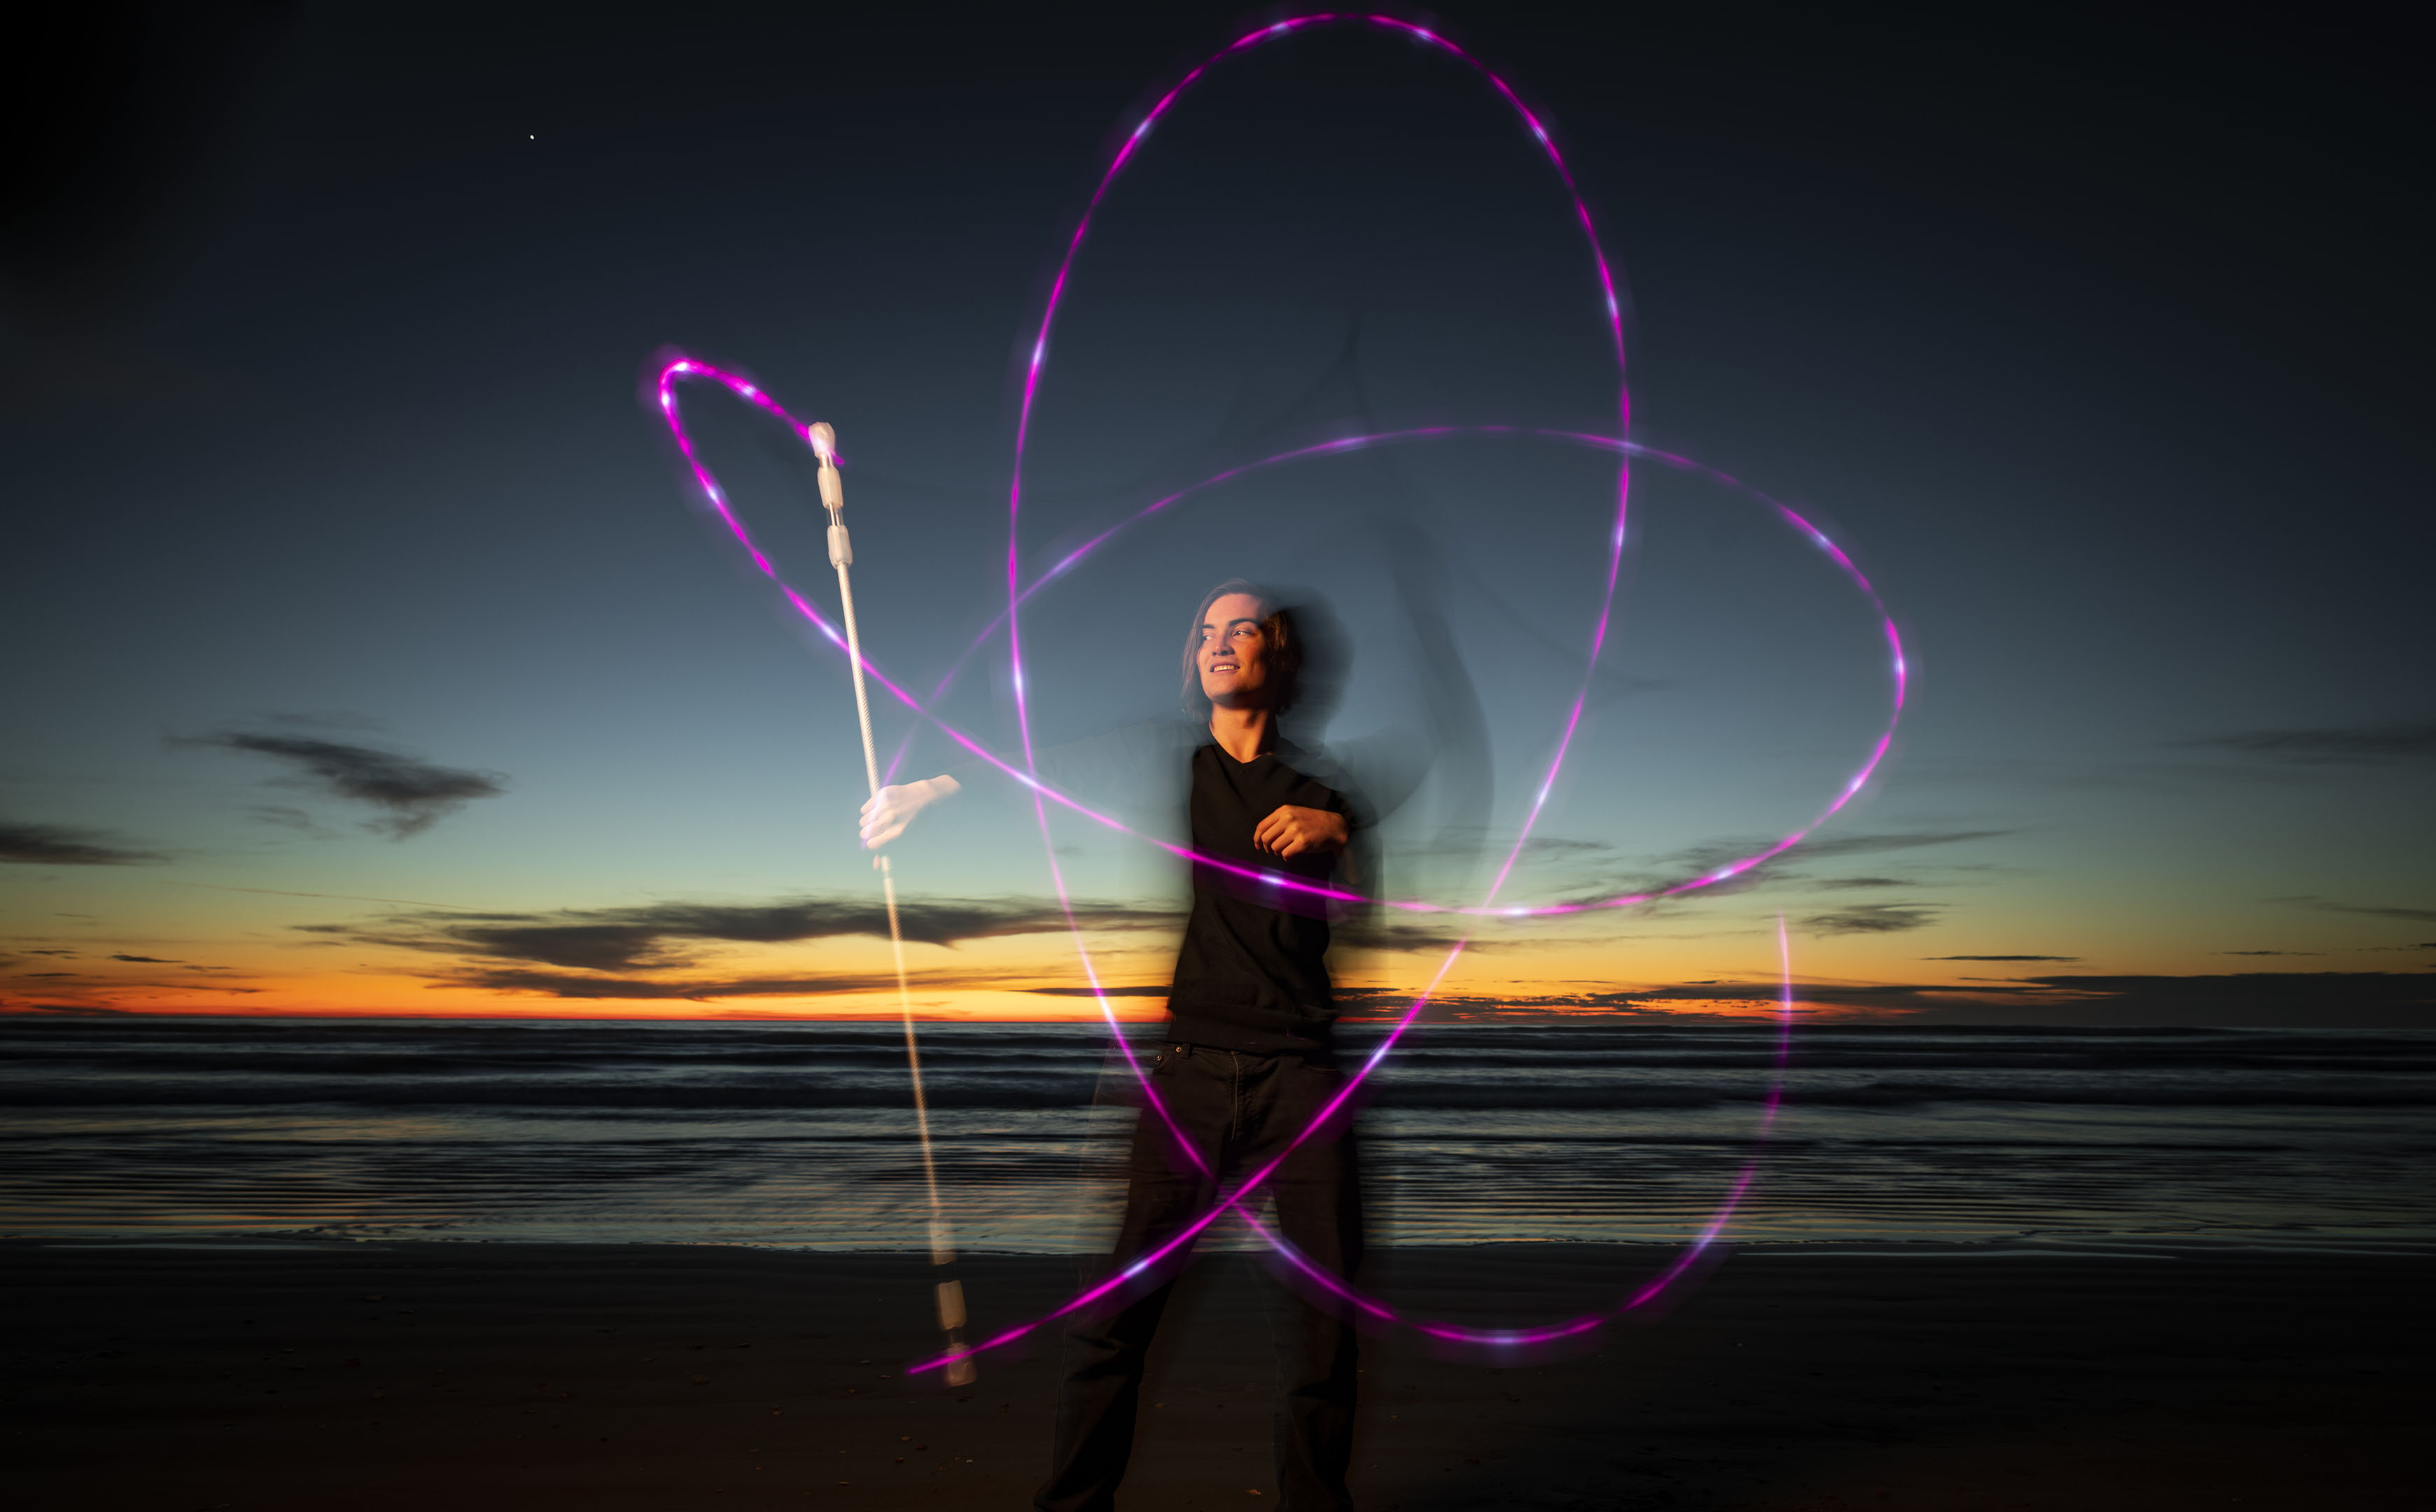 A young man stands on the beach tracing a pattern with a purple light on a long stick as the sun sets in the background